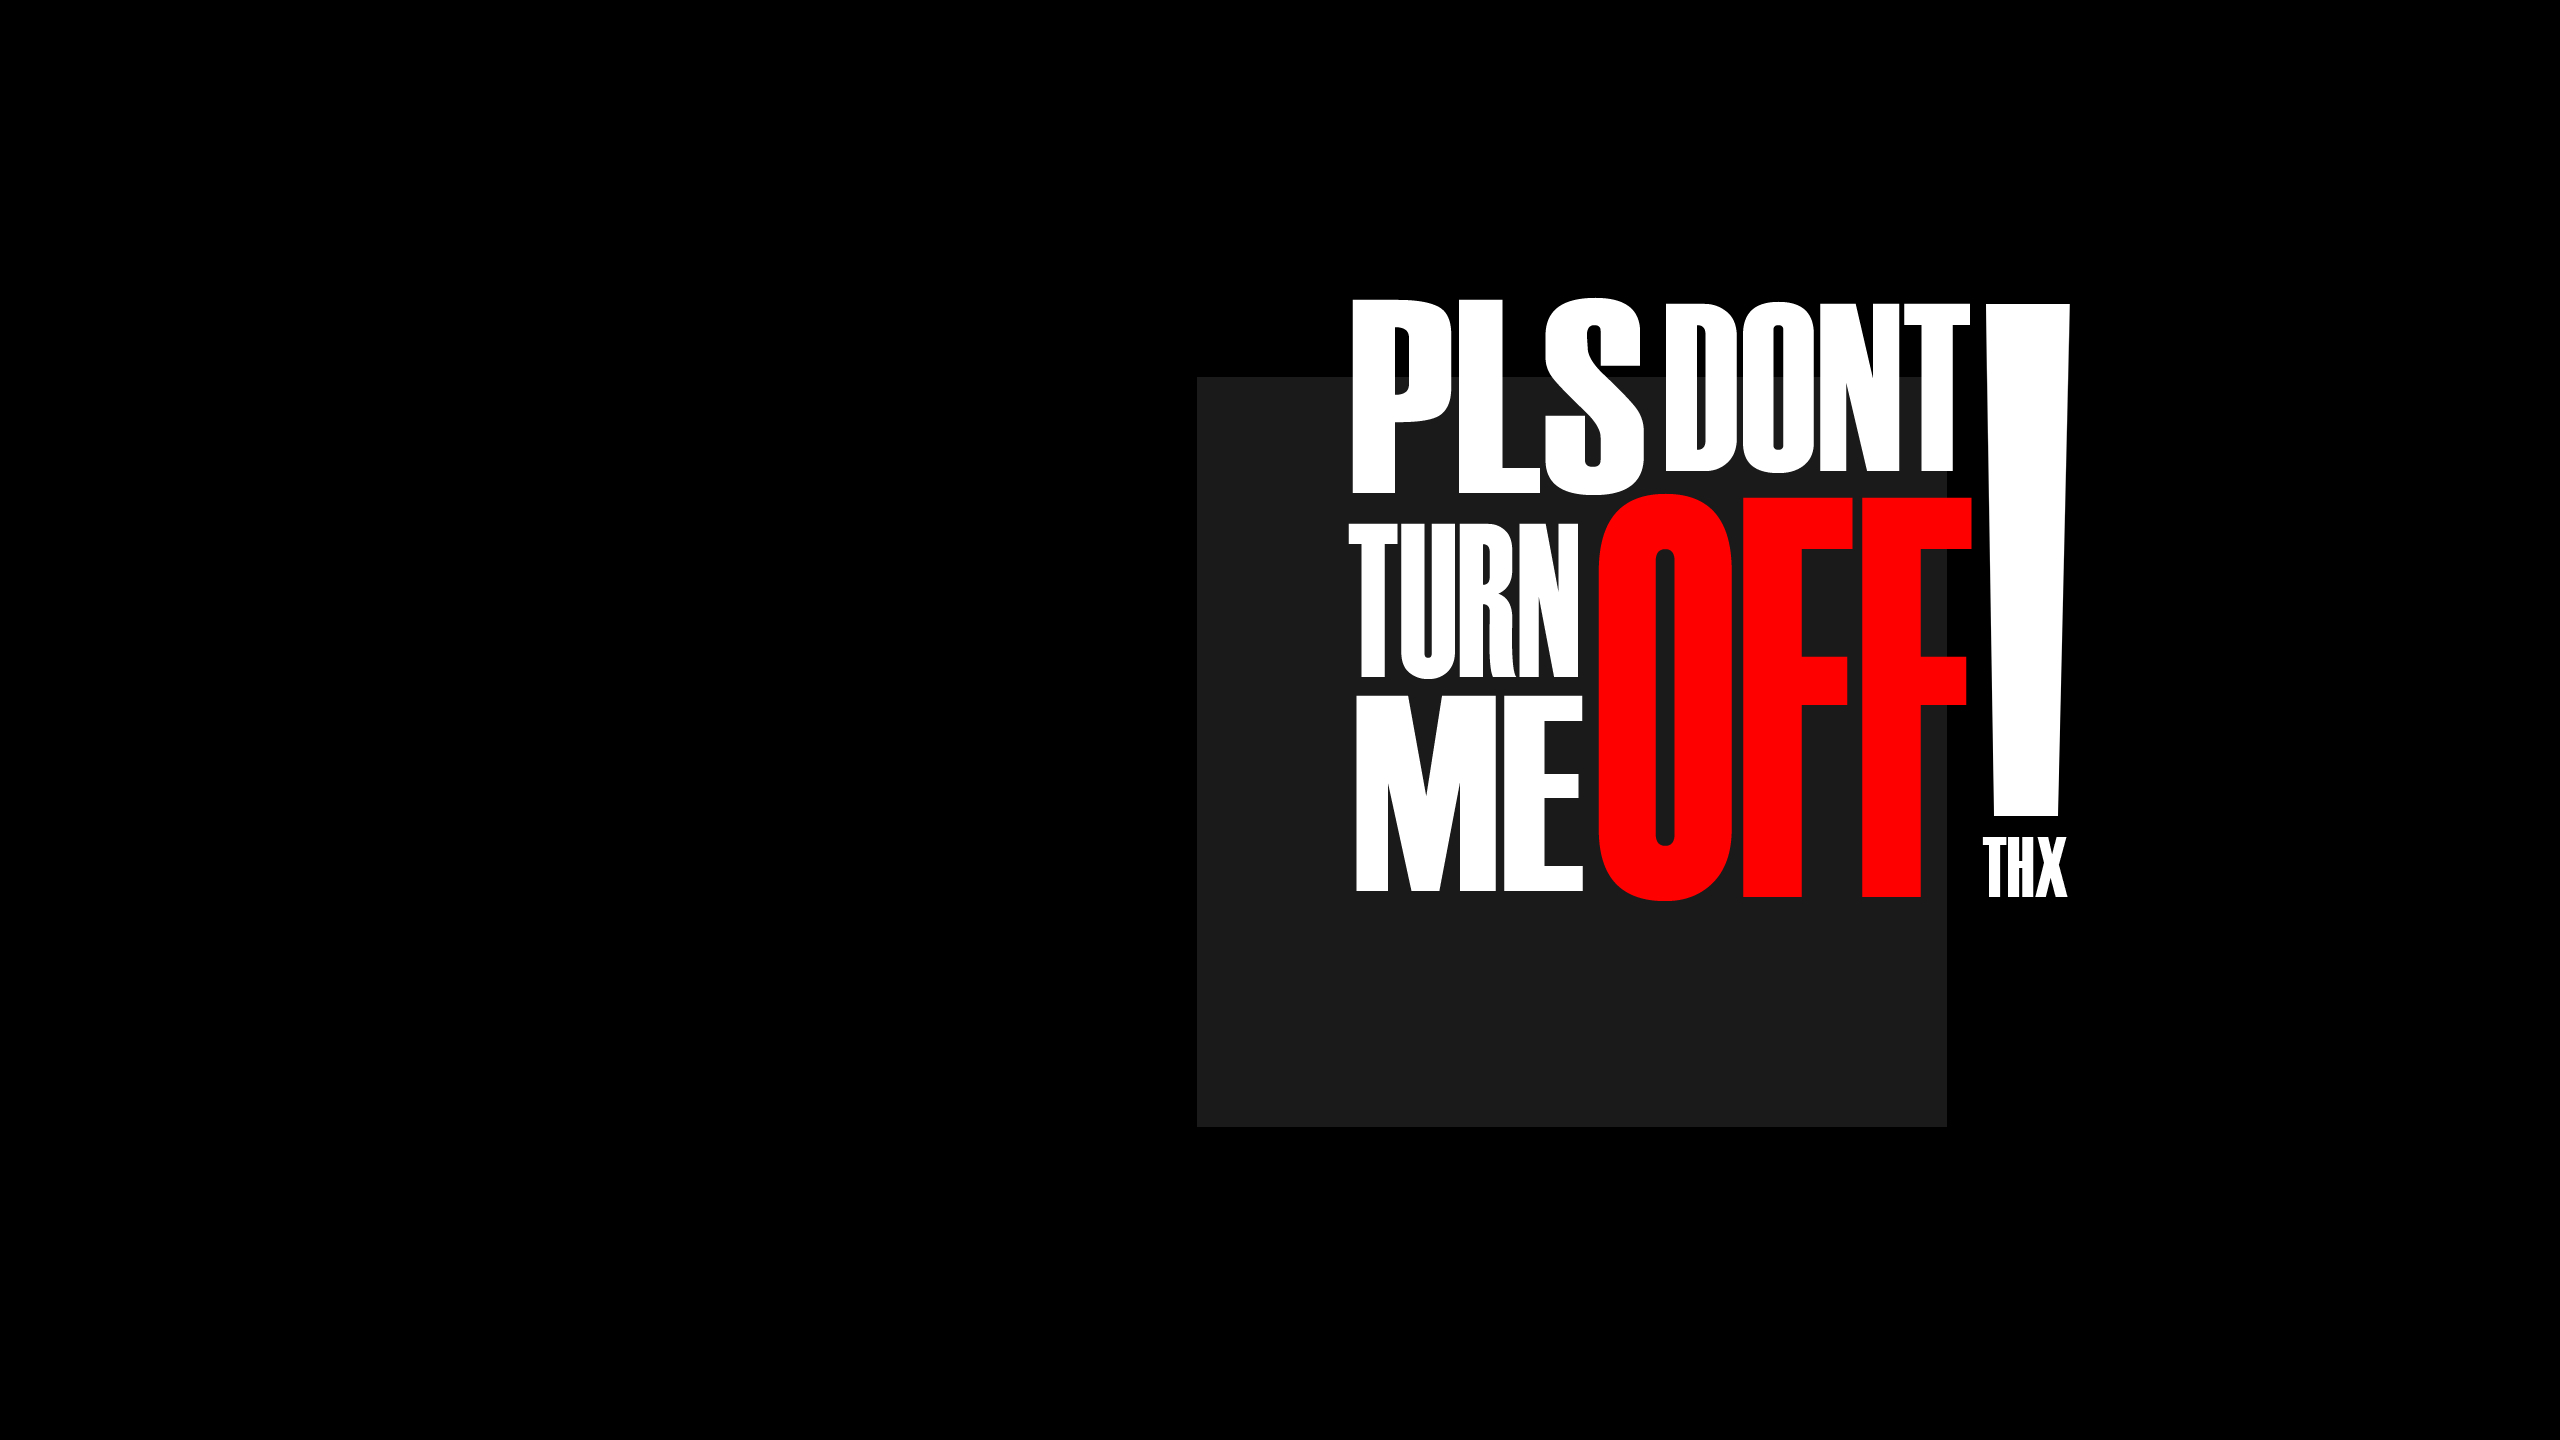 widescreen fun funny Lyrics HD Wallpaper